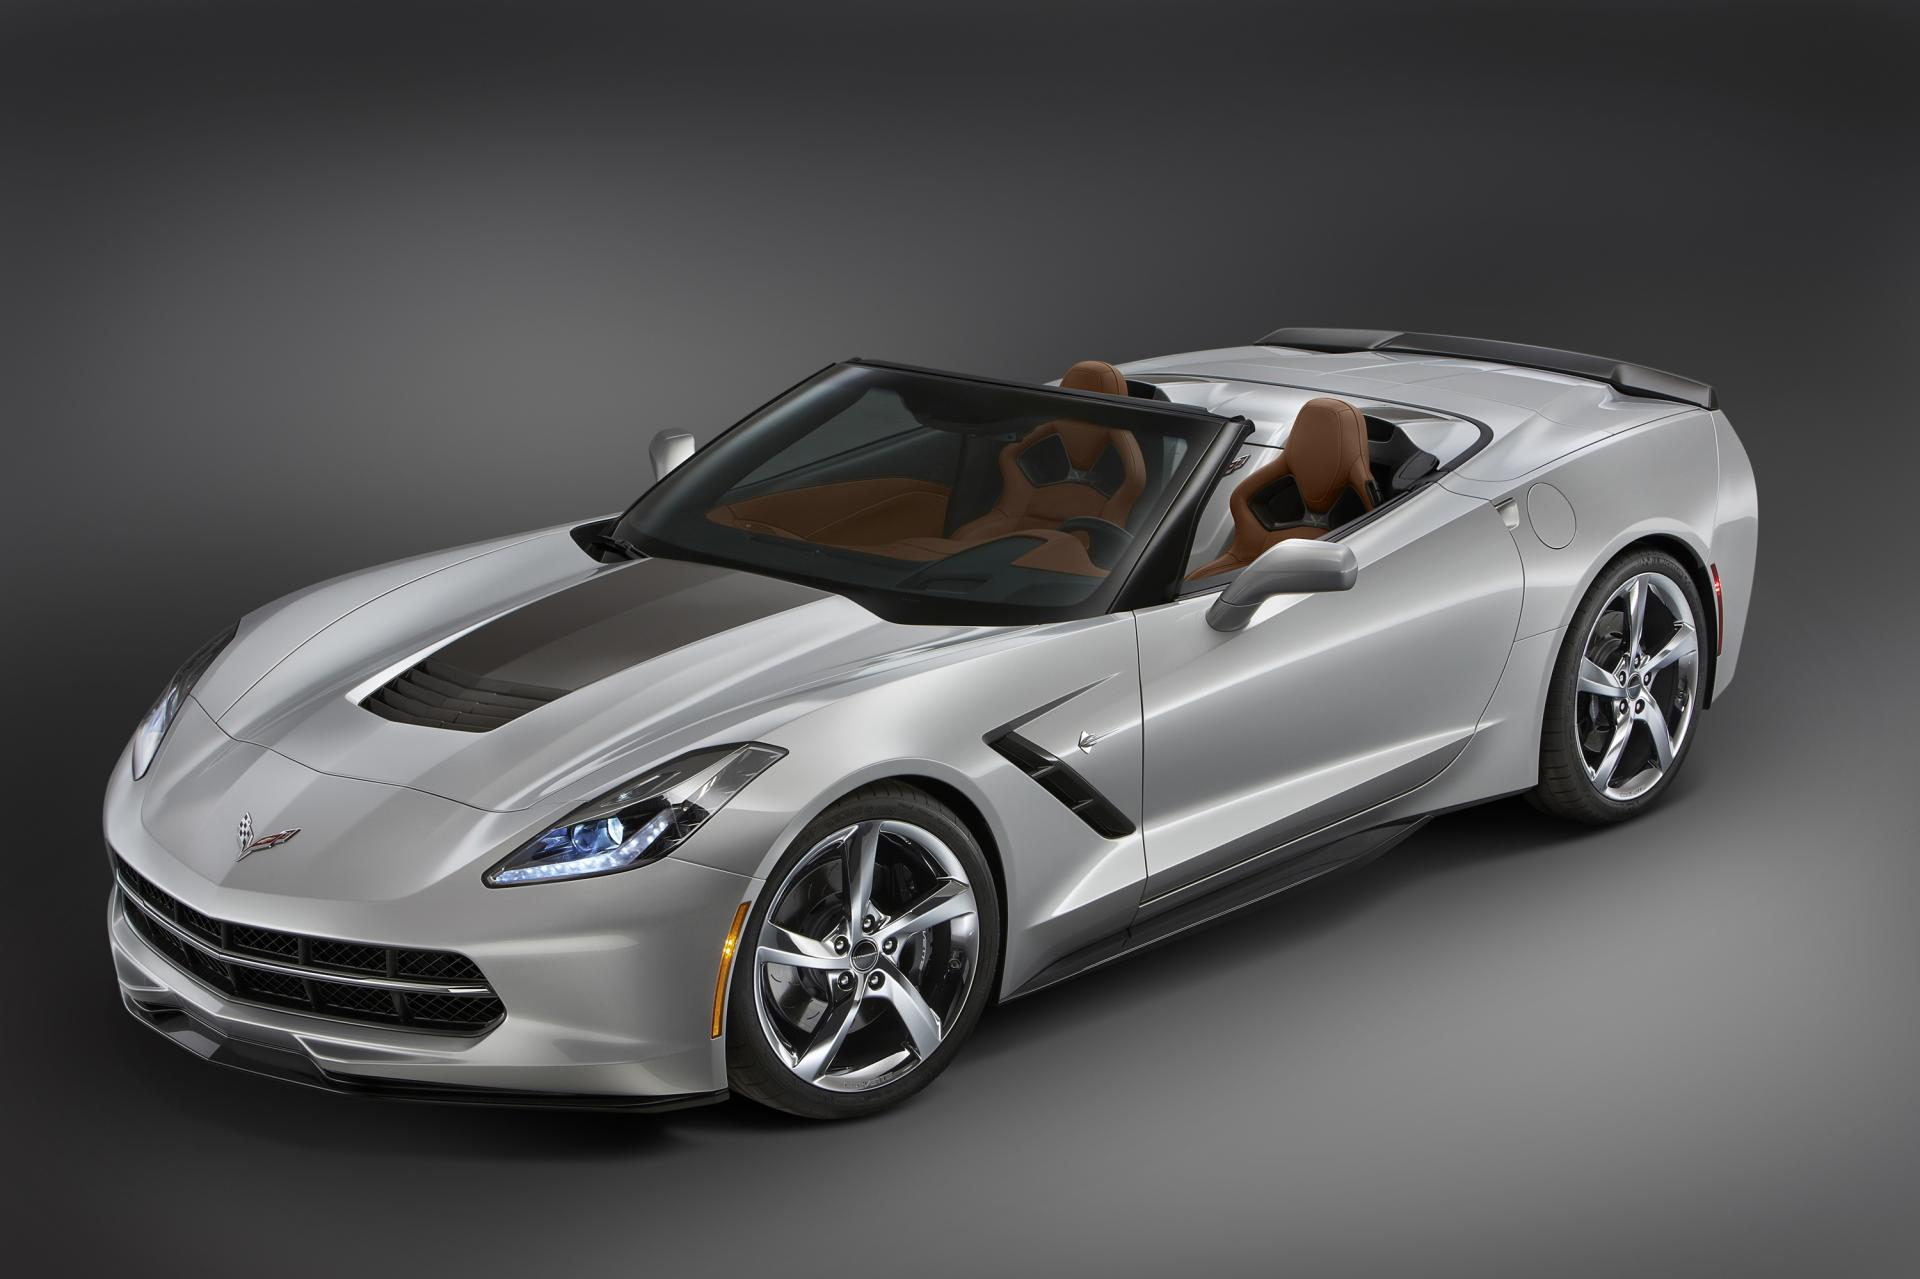 Chevrolet Corvette Stingray Convertible Atlantic Concept pictures and wallpaper